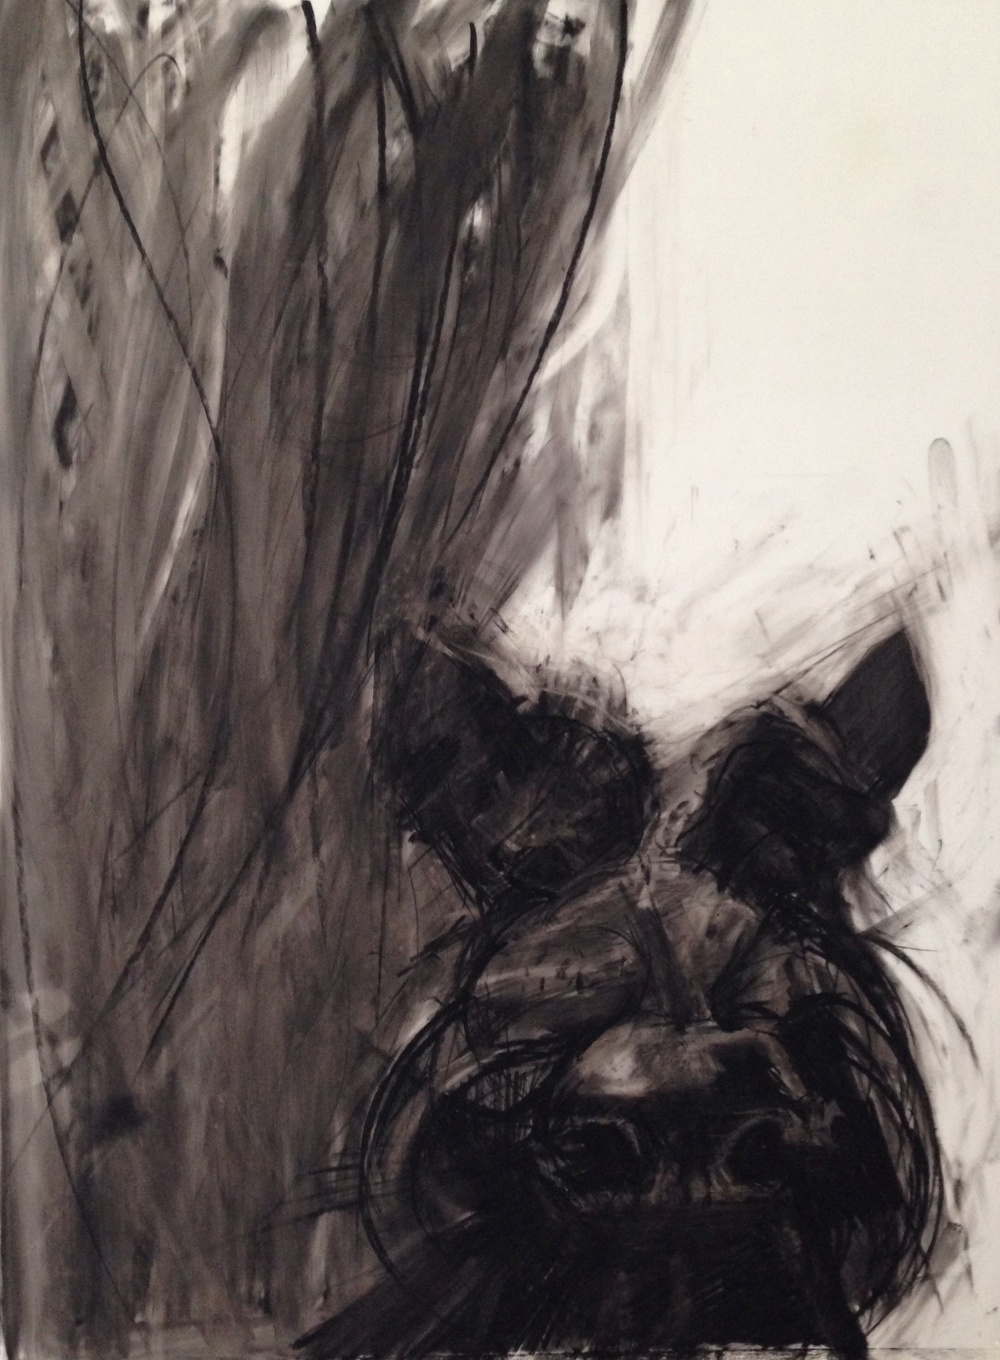 No 2 Scottie Dog, Charcoal and Conte on Mylar, A3